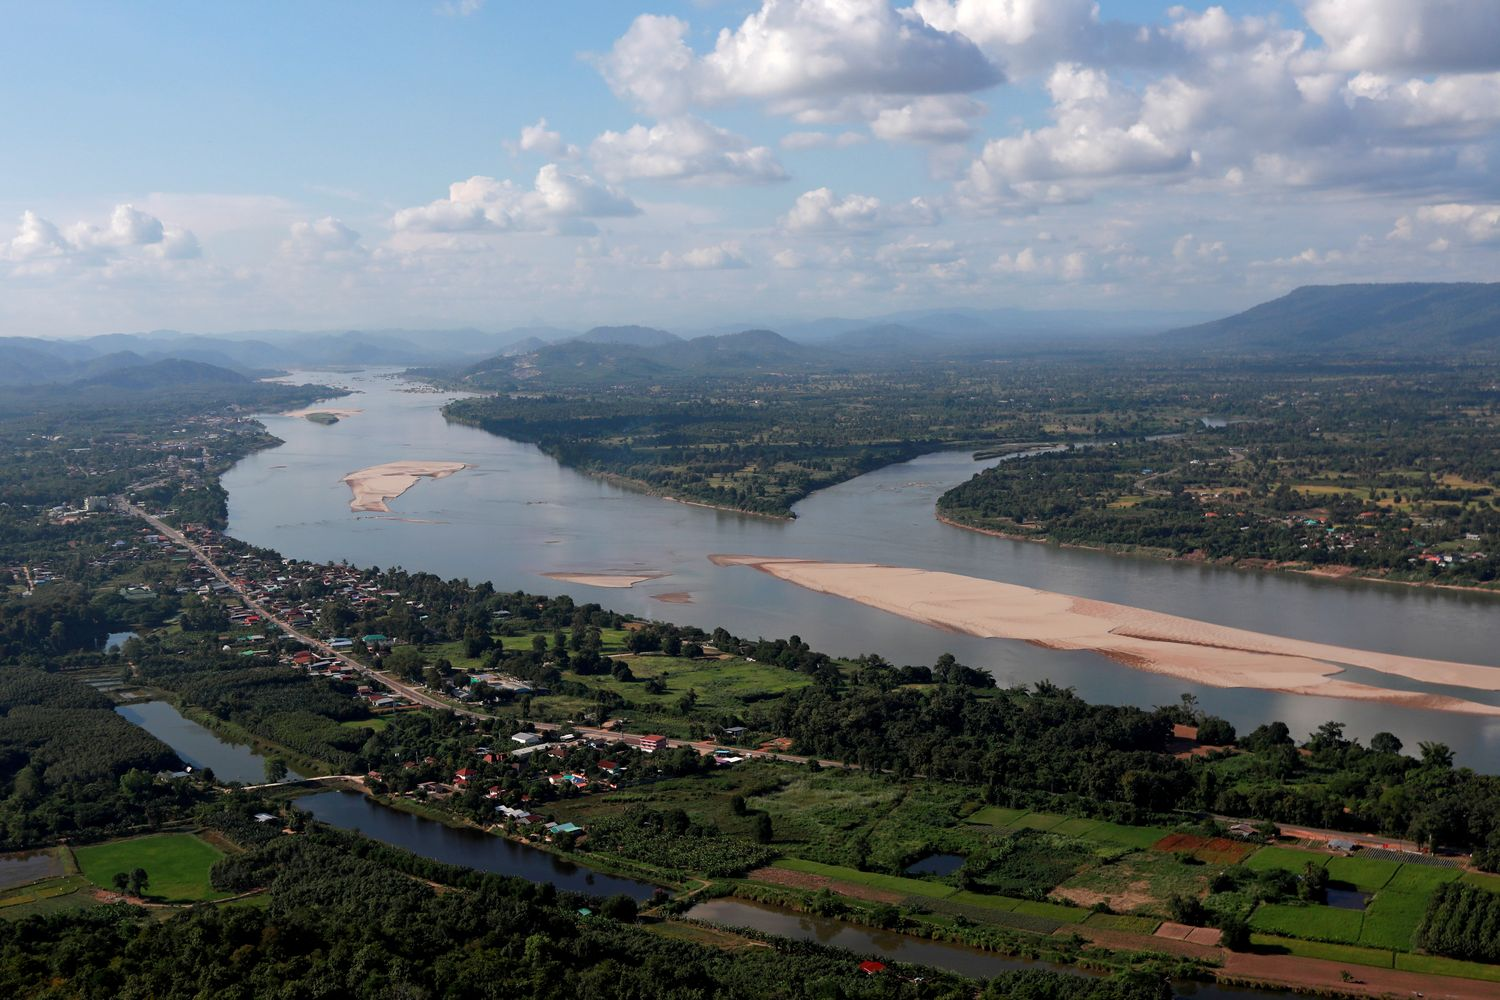 A view of the Mekong river bordering Thailand and Laos is seen from the Thai side in Nong Khai in October 2019. (Reuters photo)